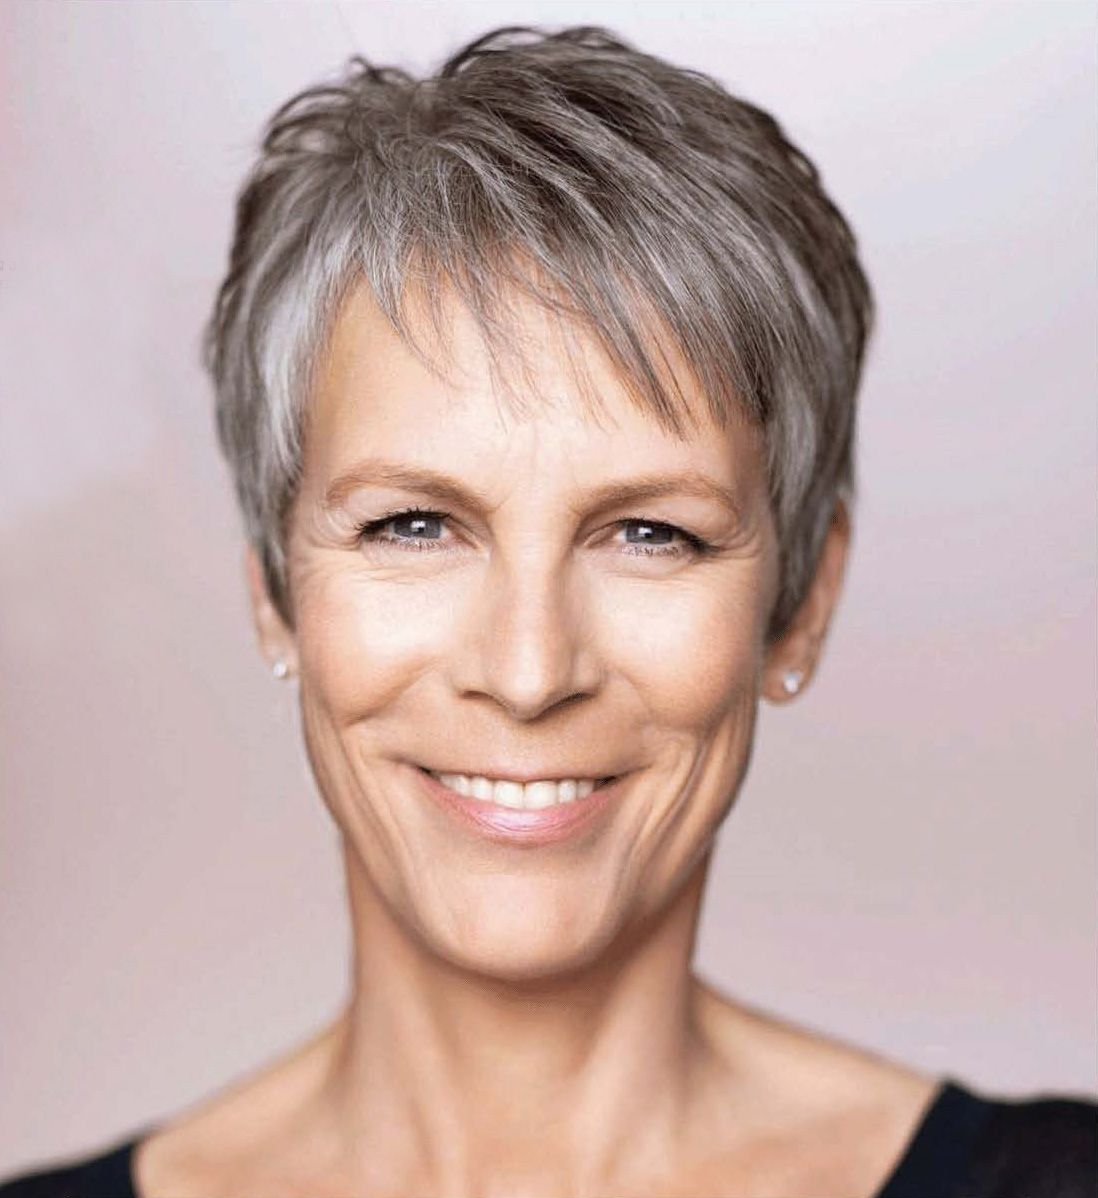 Jamie lee curtis she is the only woman who looks good with this